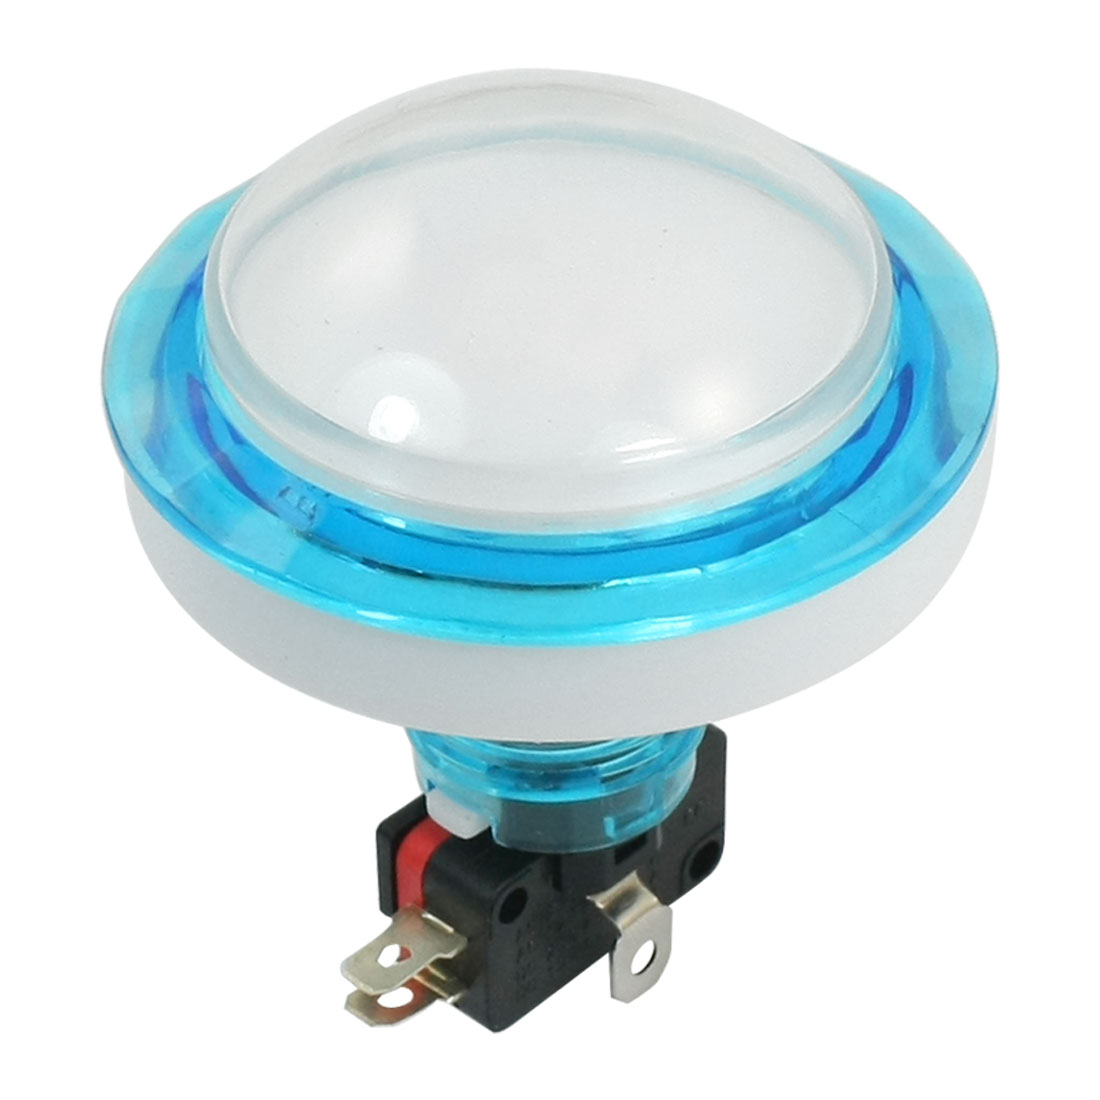 DC12V 23mm Dia Thread Panel Mount White Pilot Lamp SPDT 5-Pin 1NO 1NC Momentary Control Plastic Push Button Switch